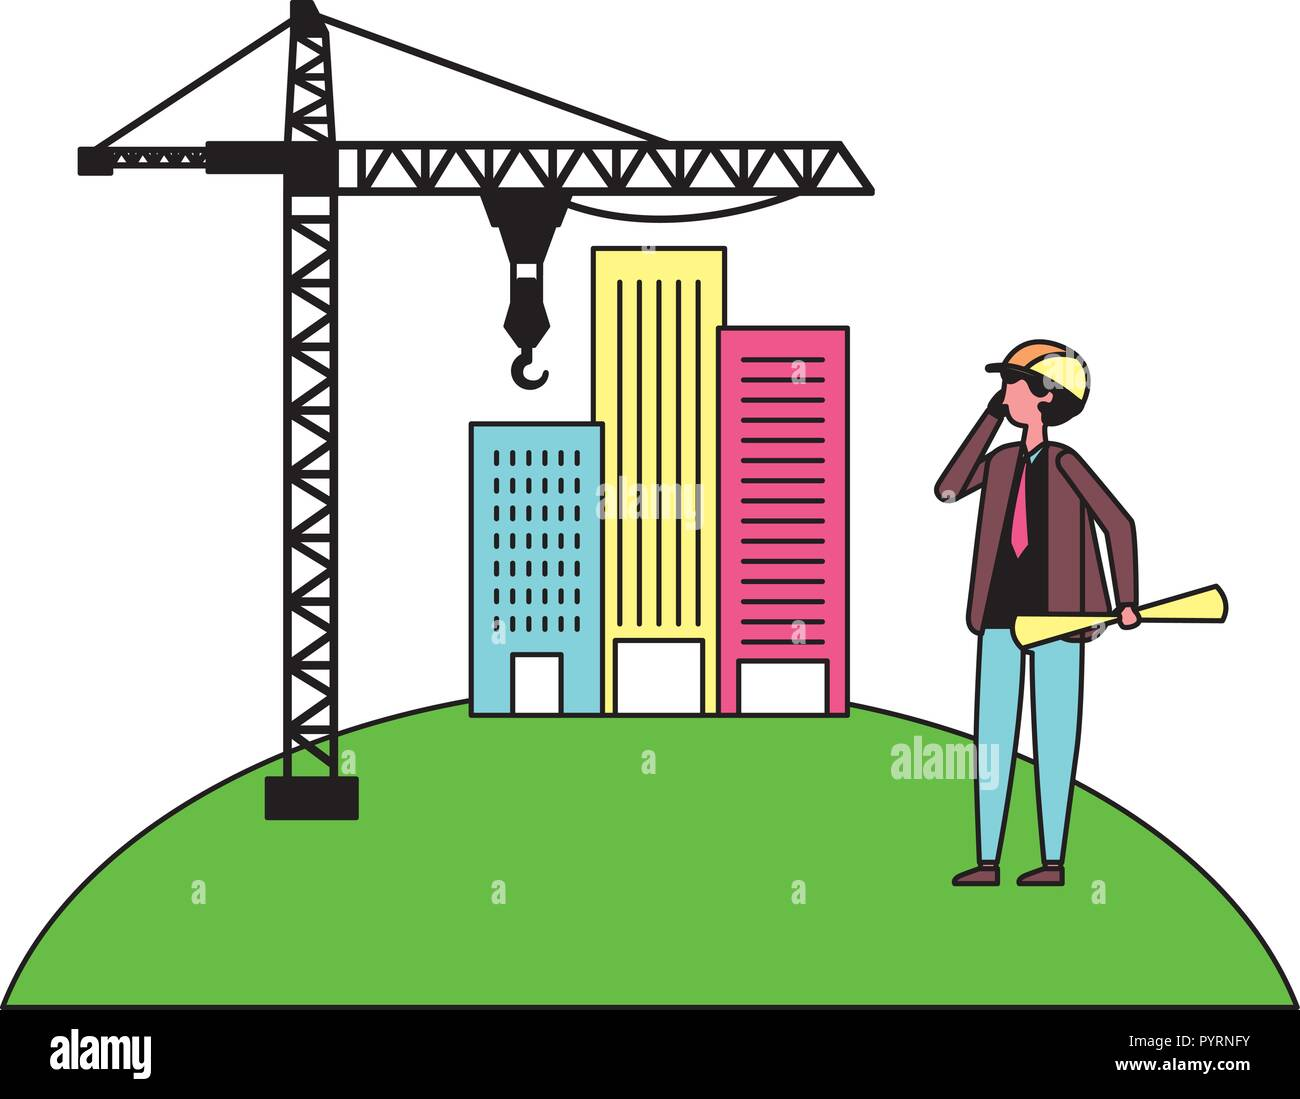 architect man with construction crane and buildings - Stock Vector